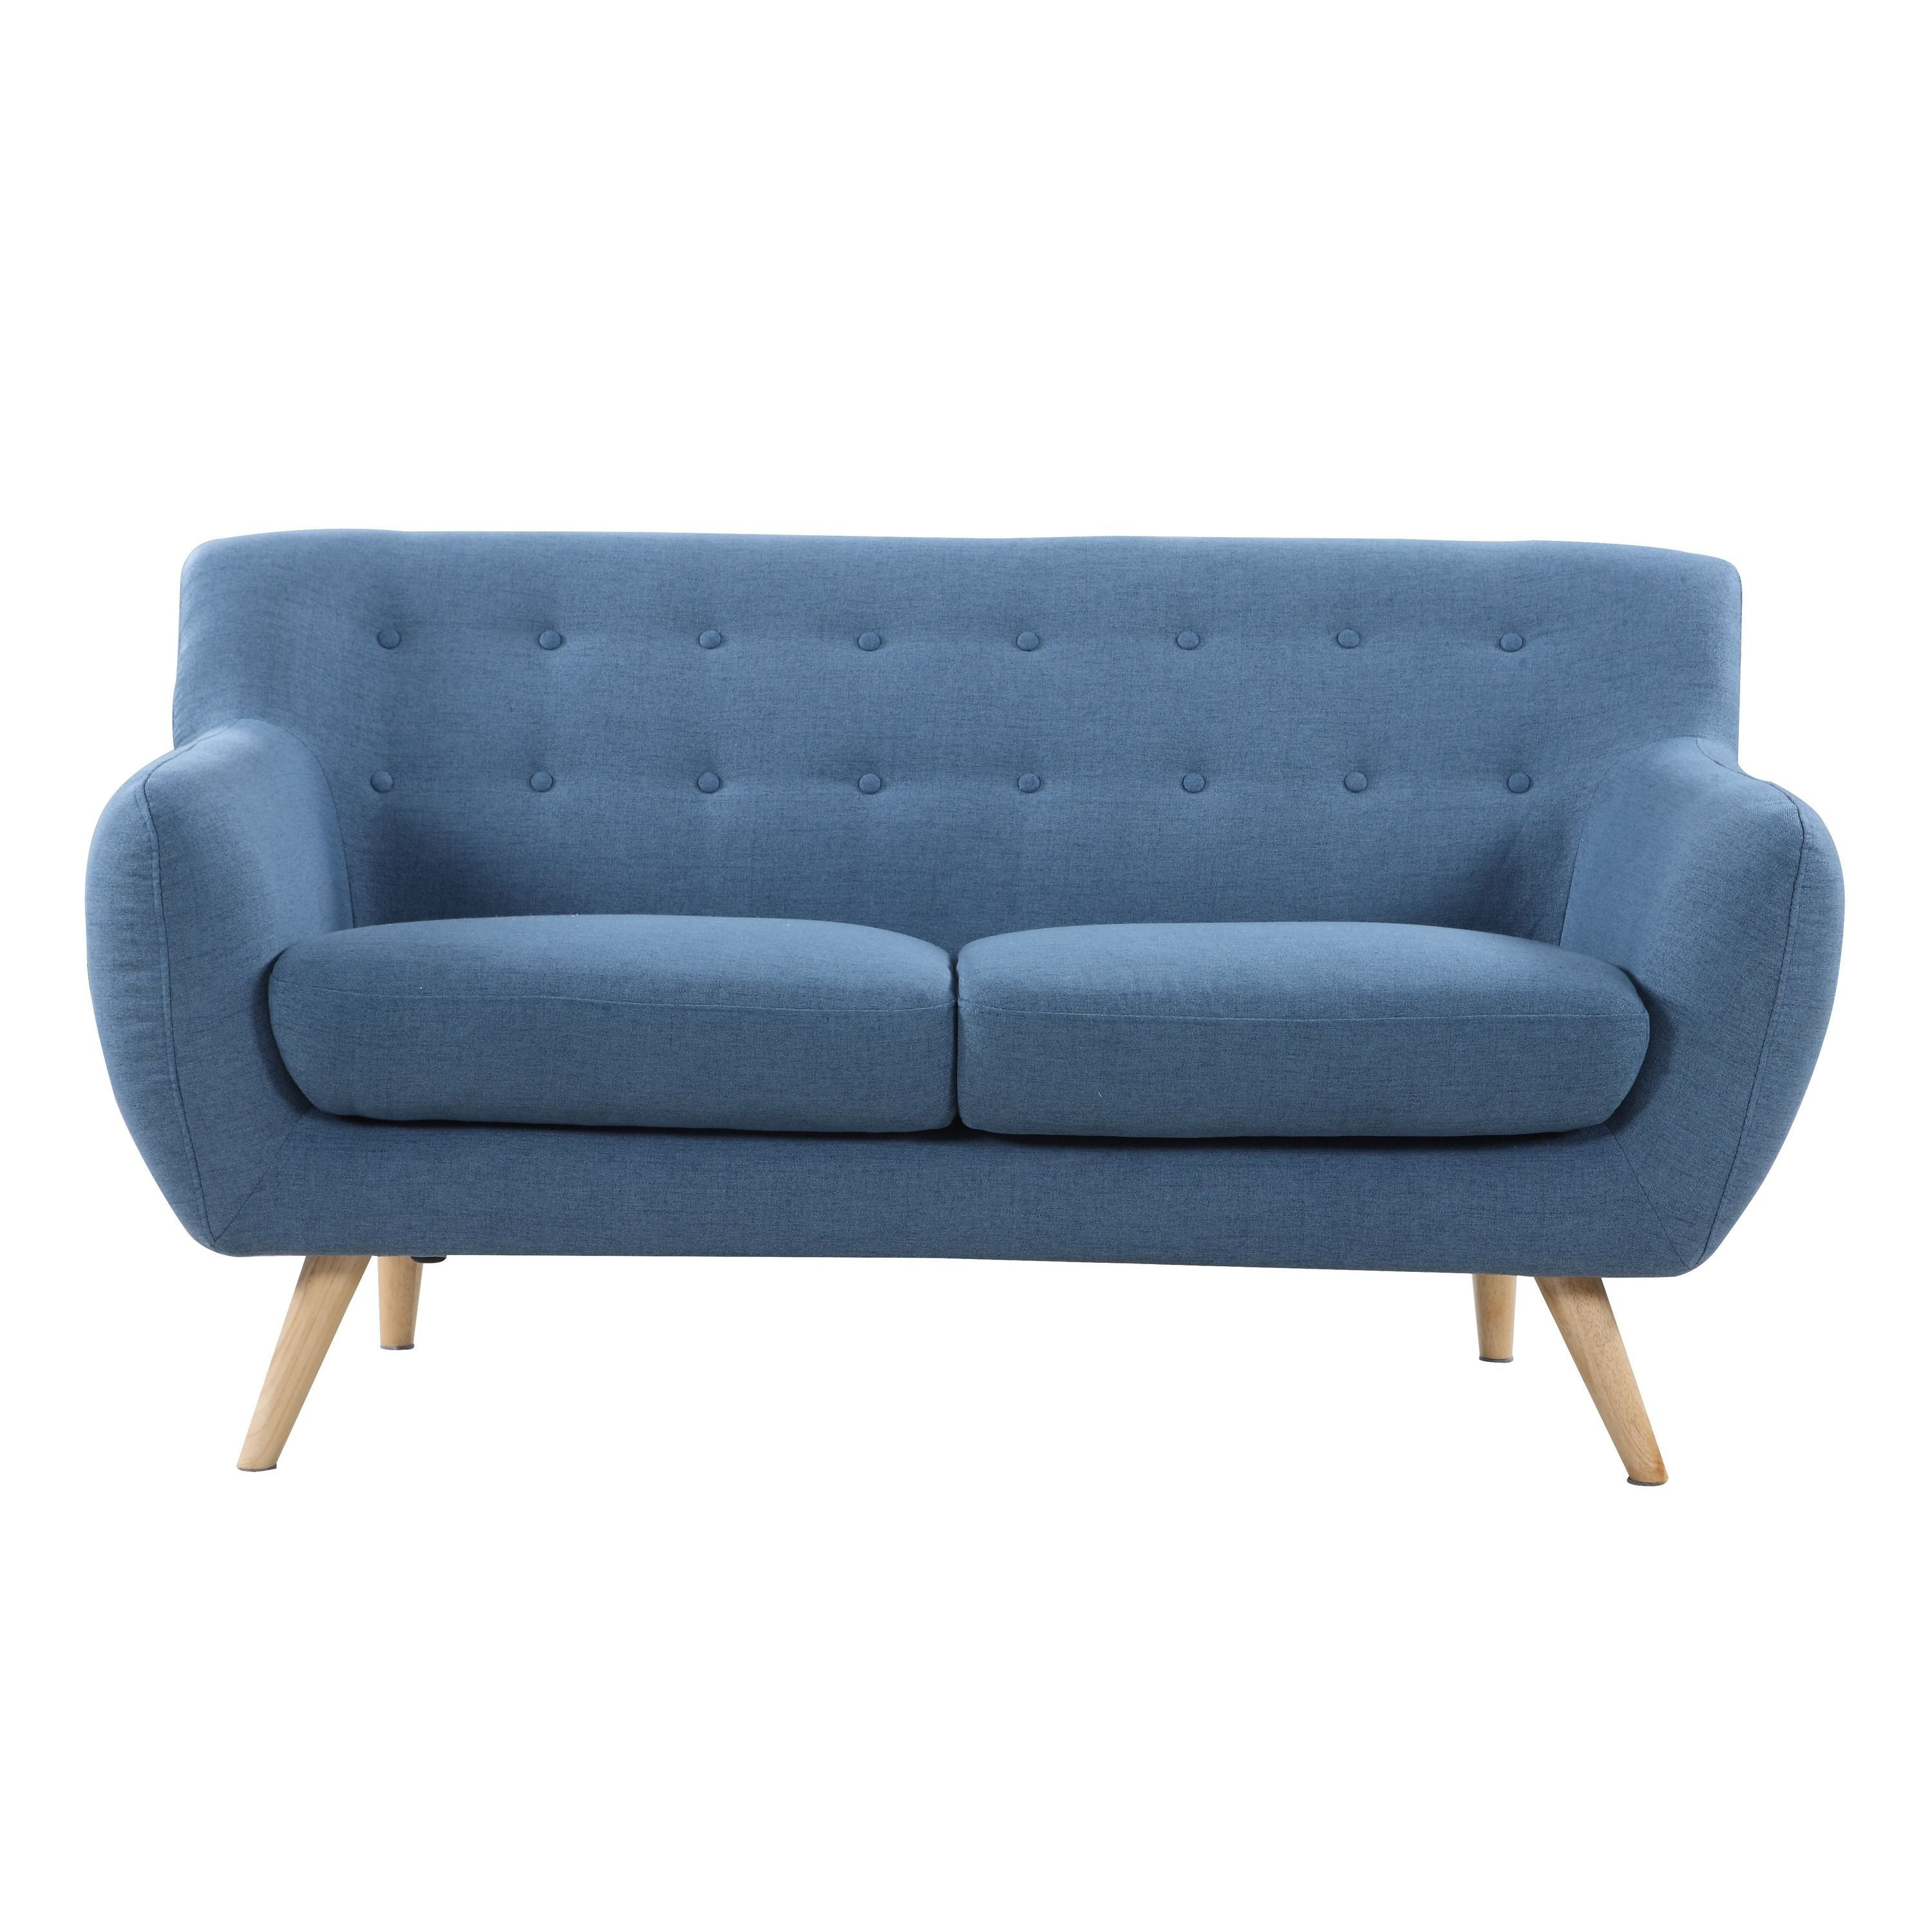 madison mid century modern love seat living room furniture  - madison mid century modern love seat living room furniture  assorted colors